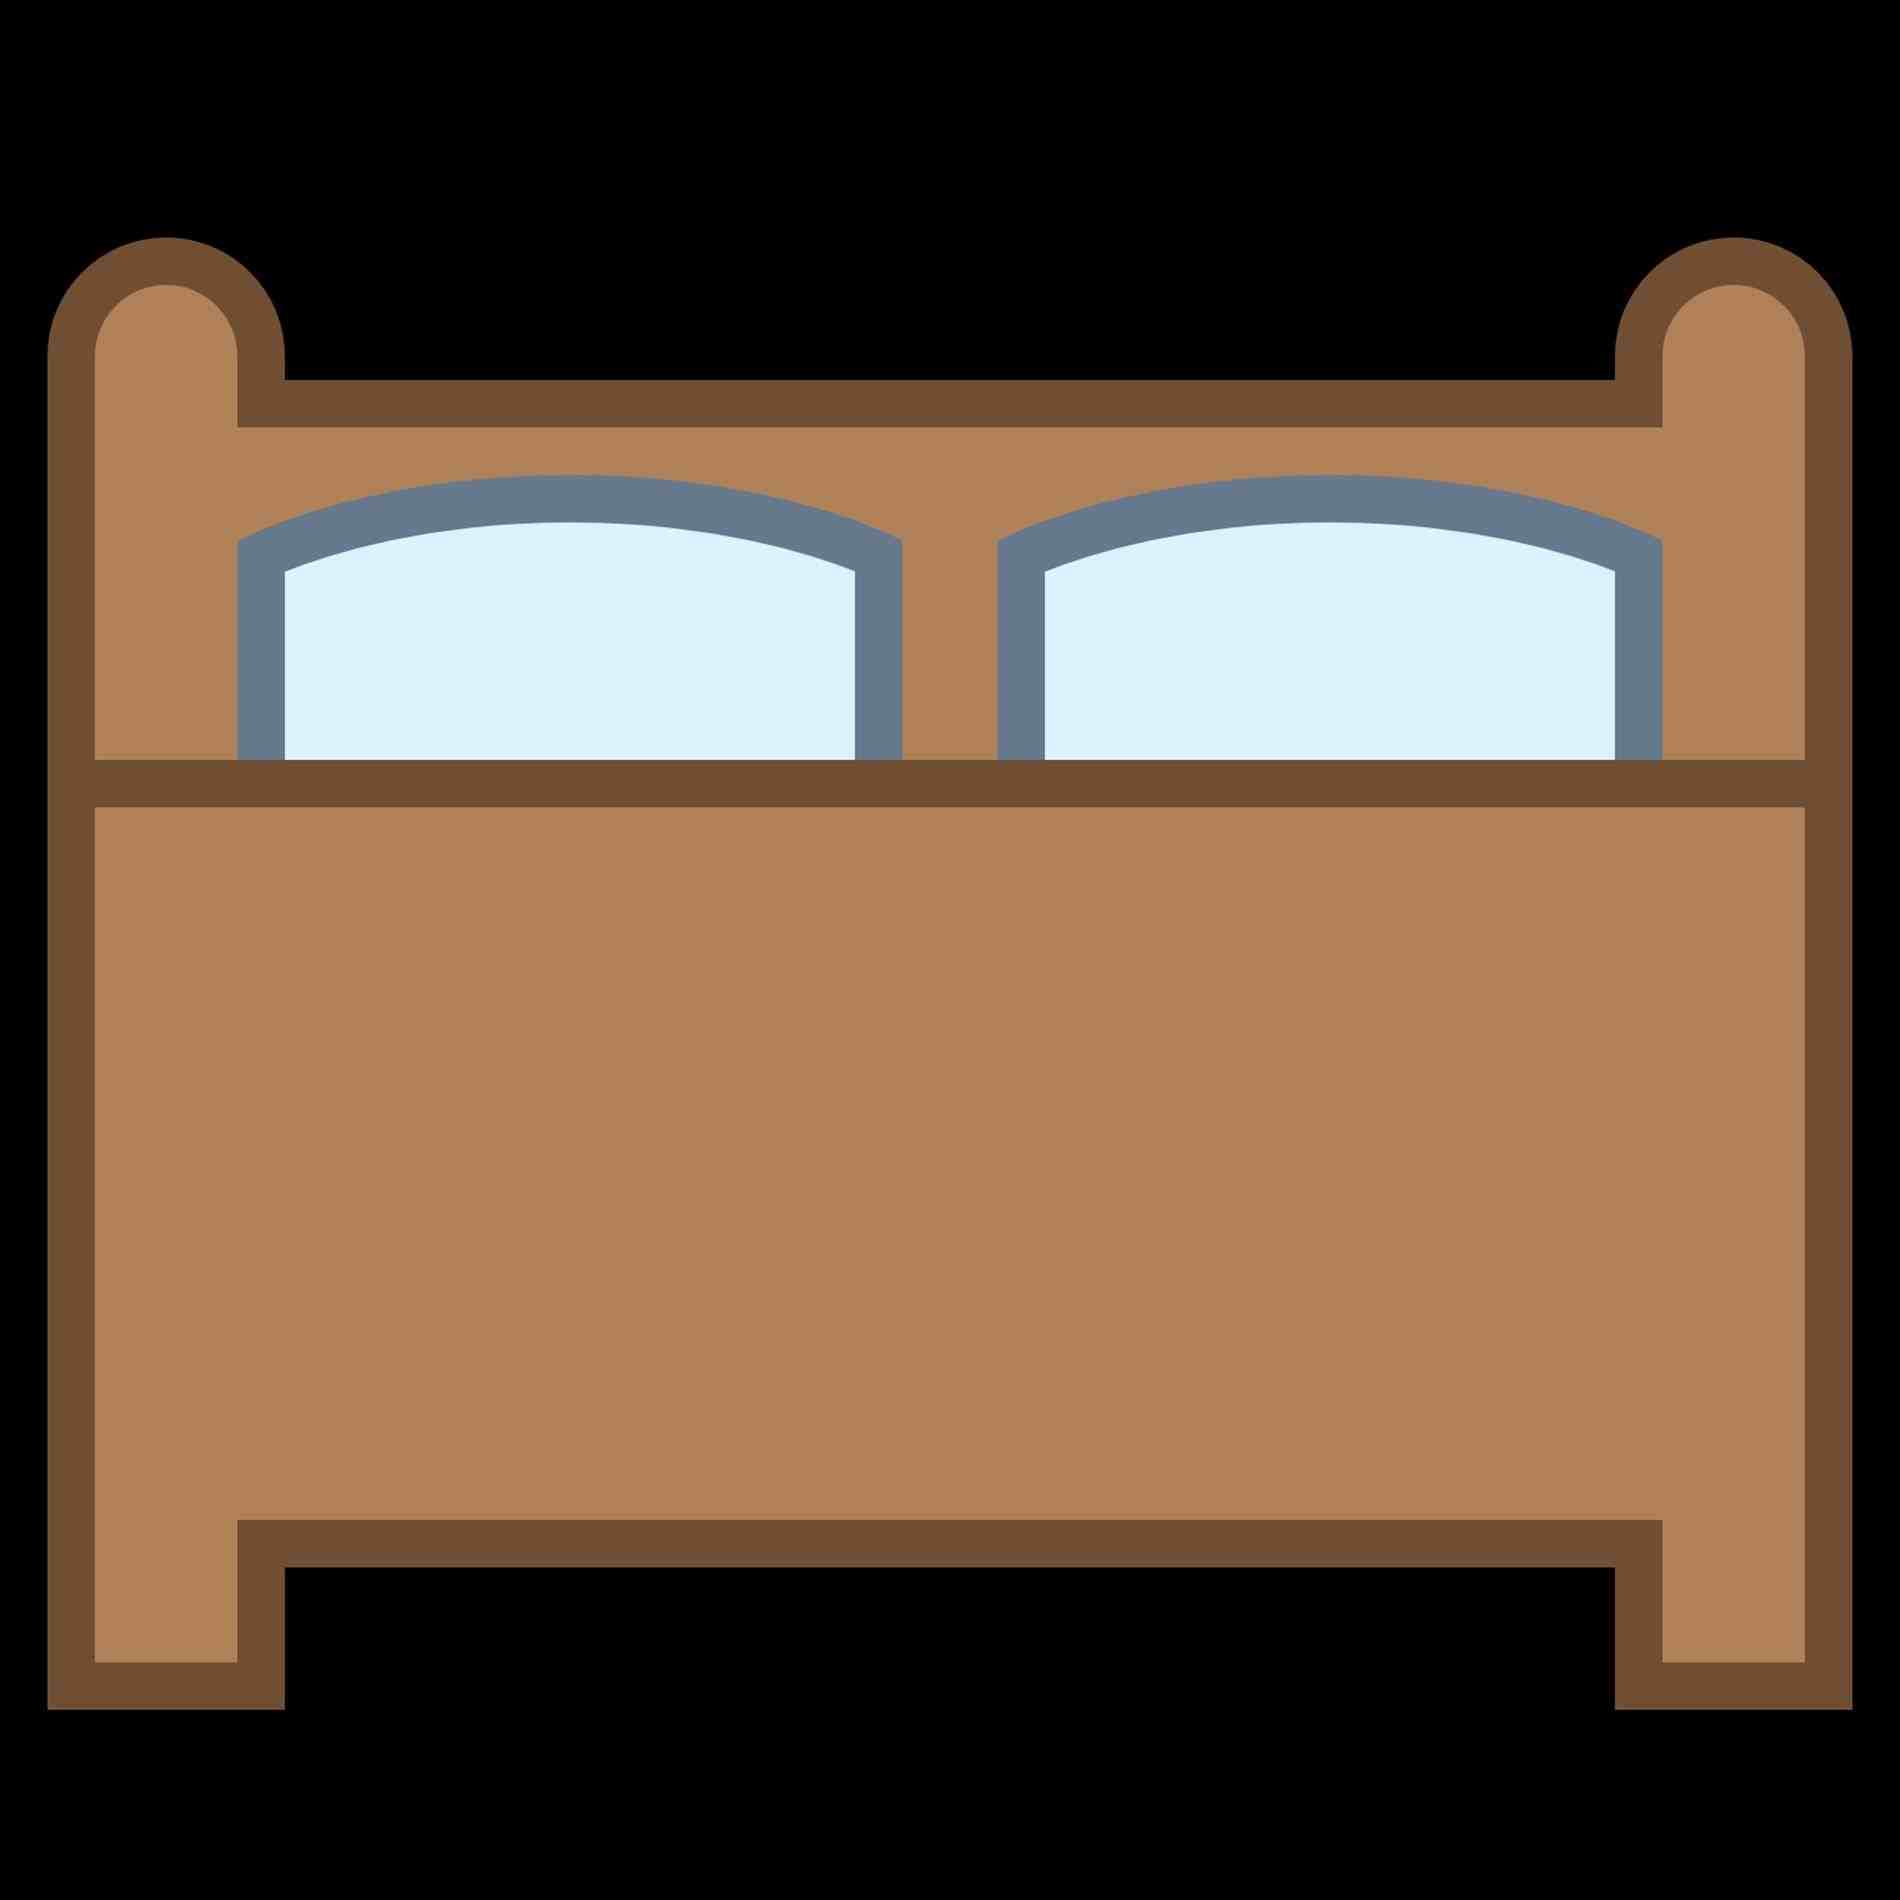 Bed clipart side view. Bedroom png homedesignlatest site